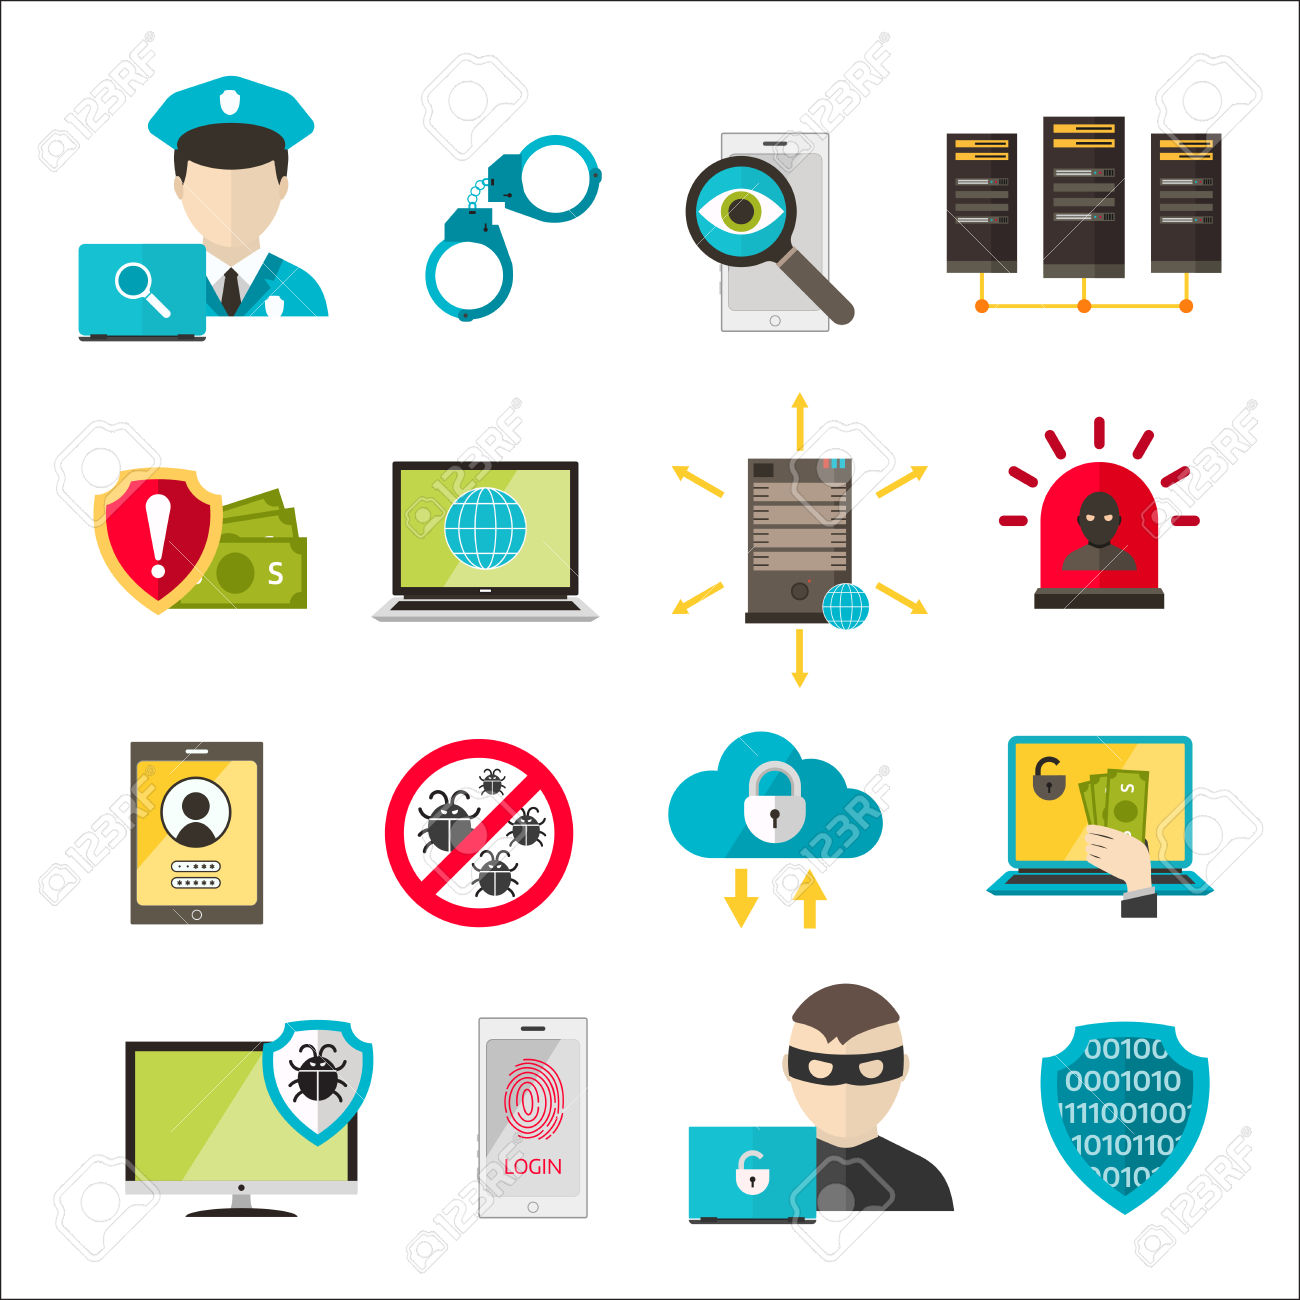 3,753 Social Network Access Stock Illustrations, Cliparts And.